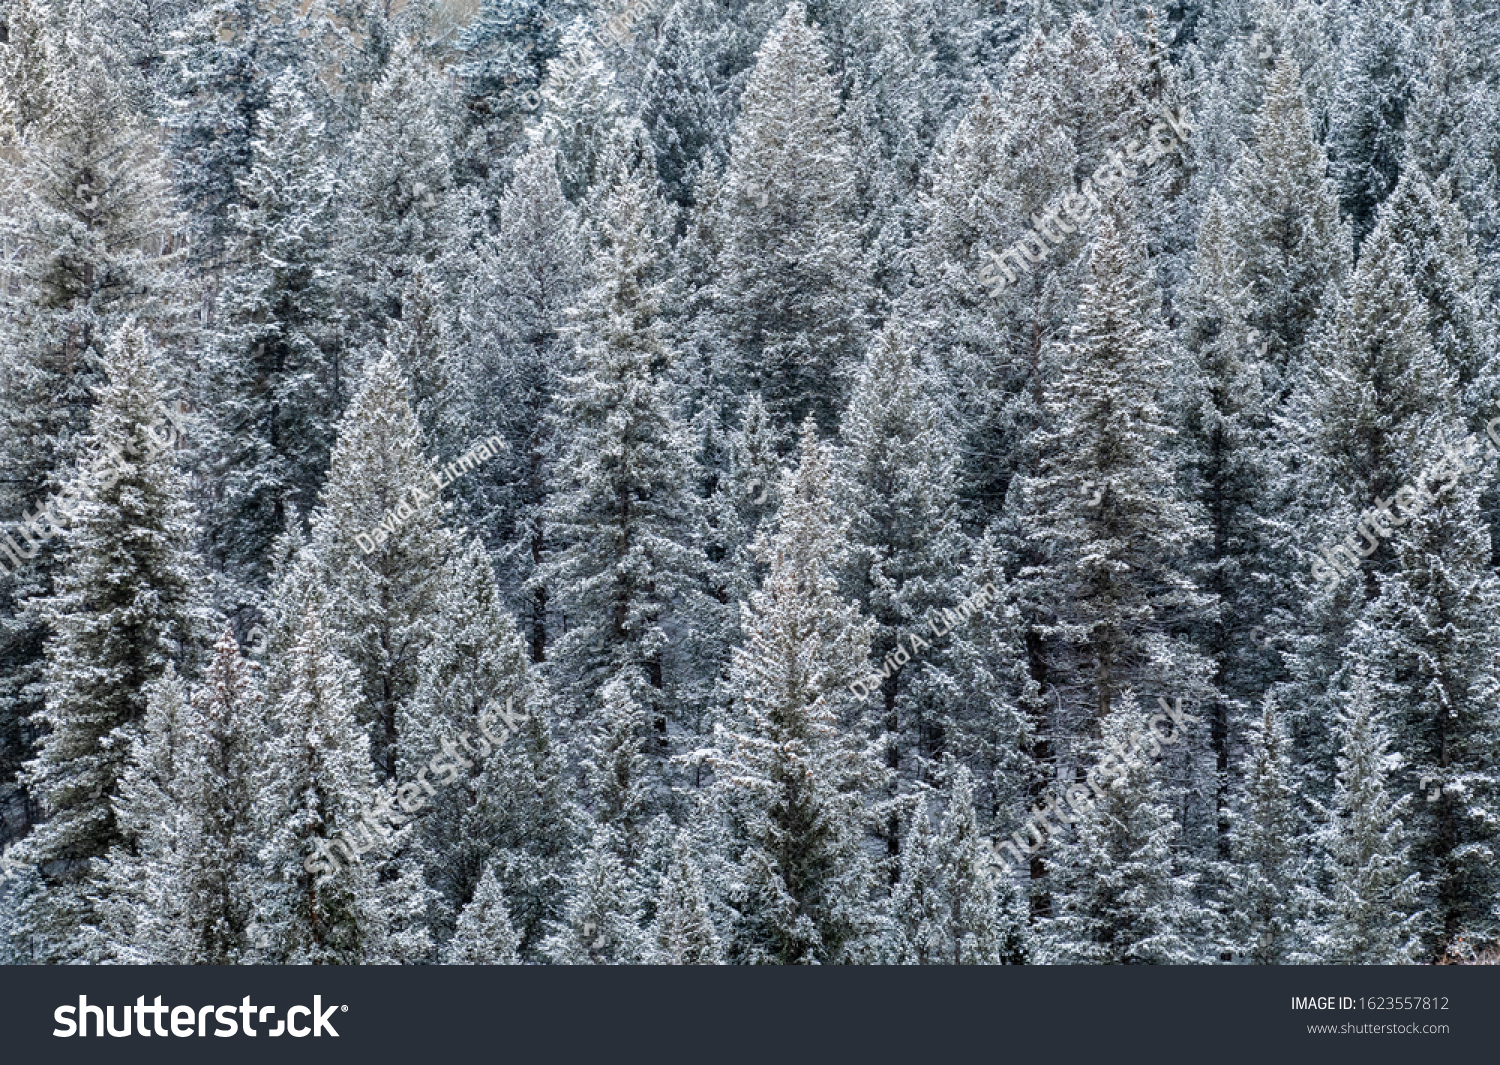 Aerial view of snow covered pine trees at the Aspen Snowmass ski resort in the Rocky Mountains of Colorado.